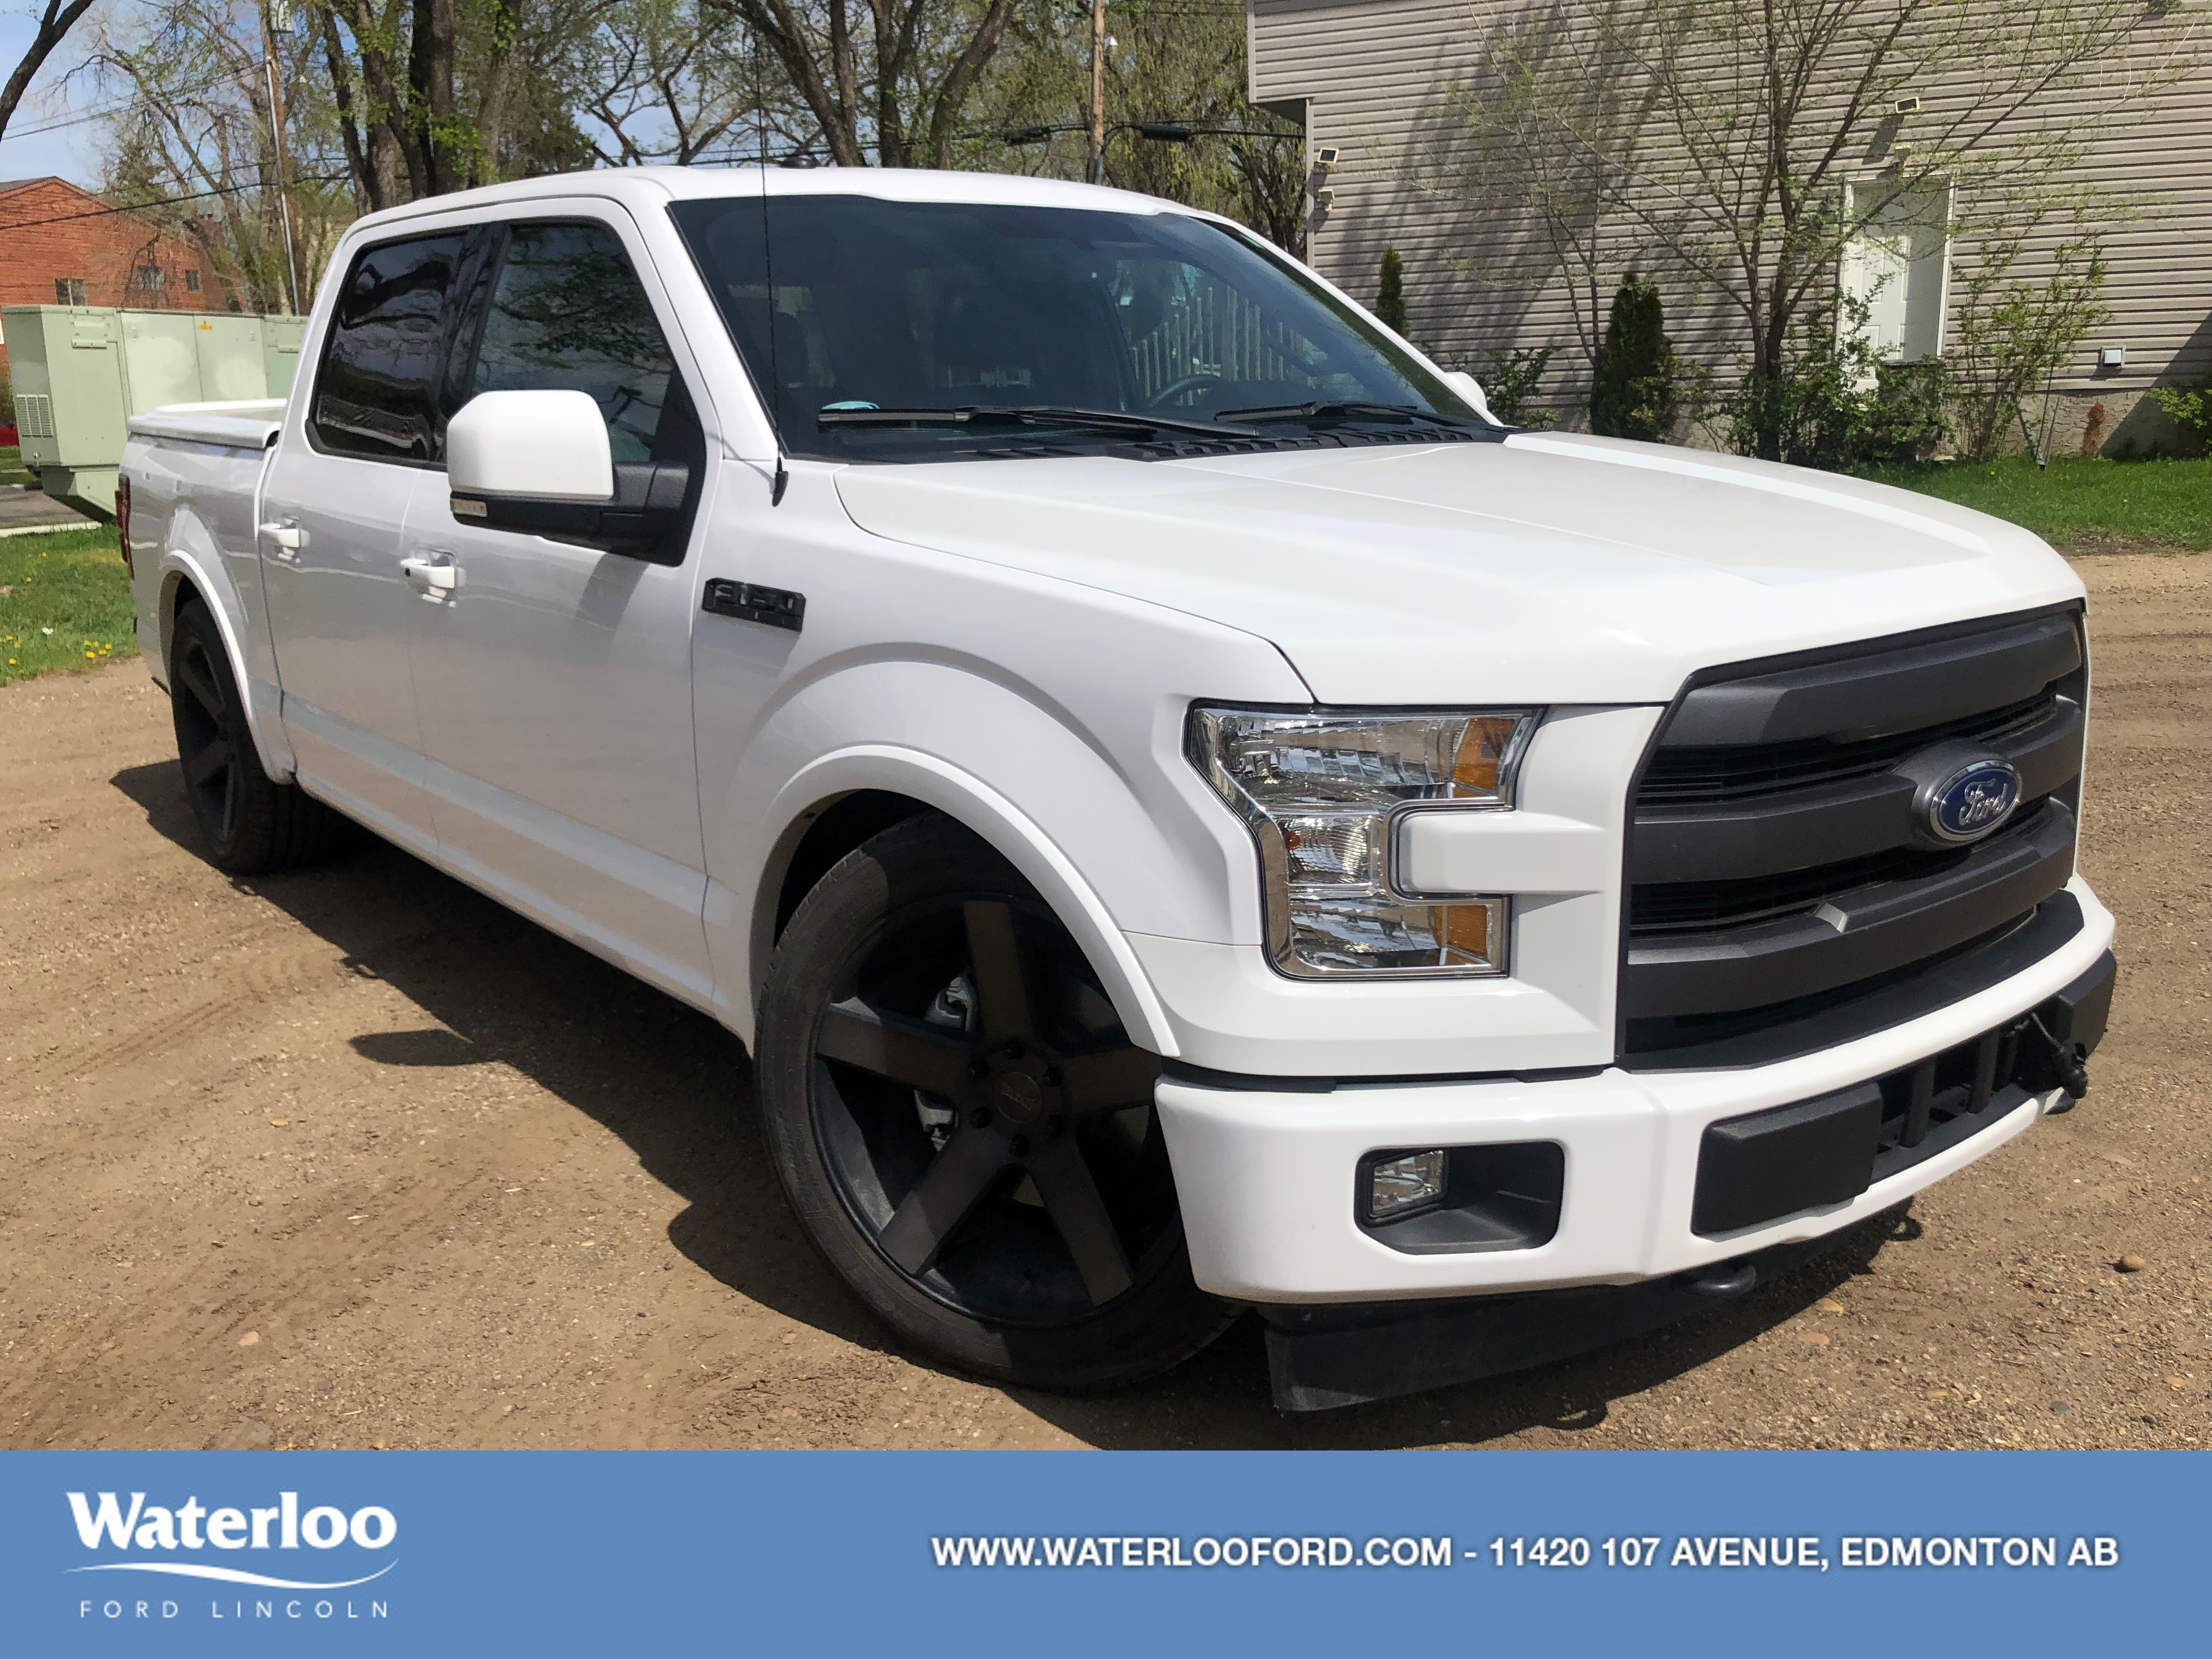 2017 Ford F-150 LOWERED | DEMO SPECIAL |  Lariat | 501A | 4x4 | Su Truck SuperCrew Cab